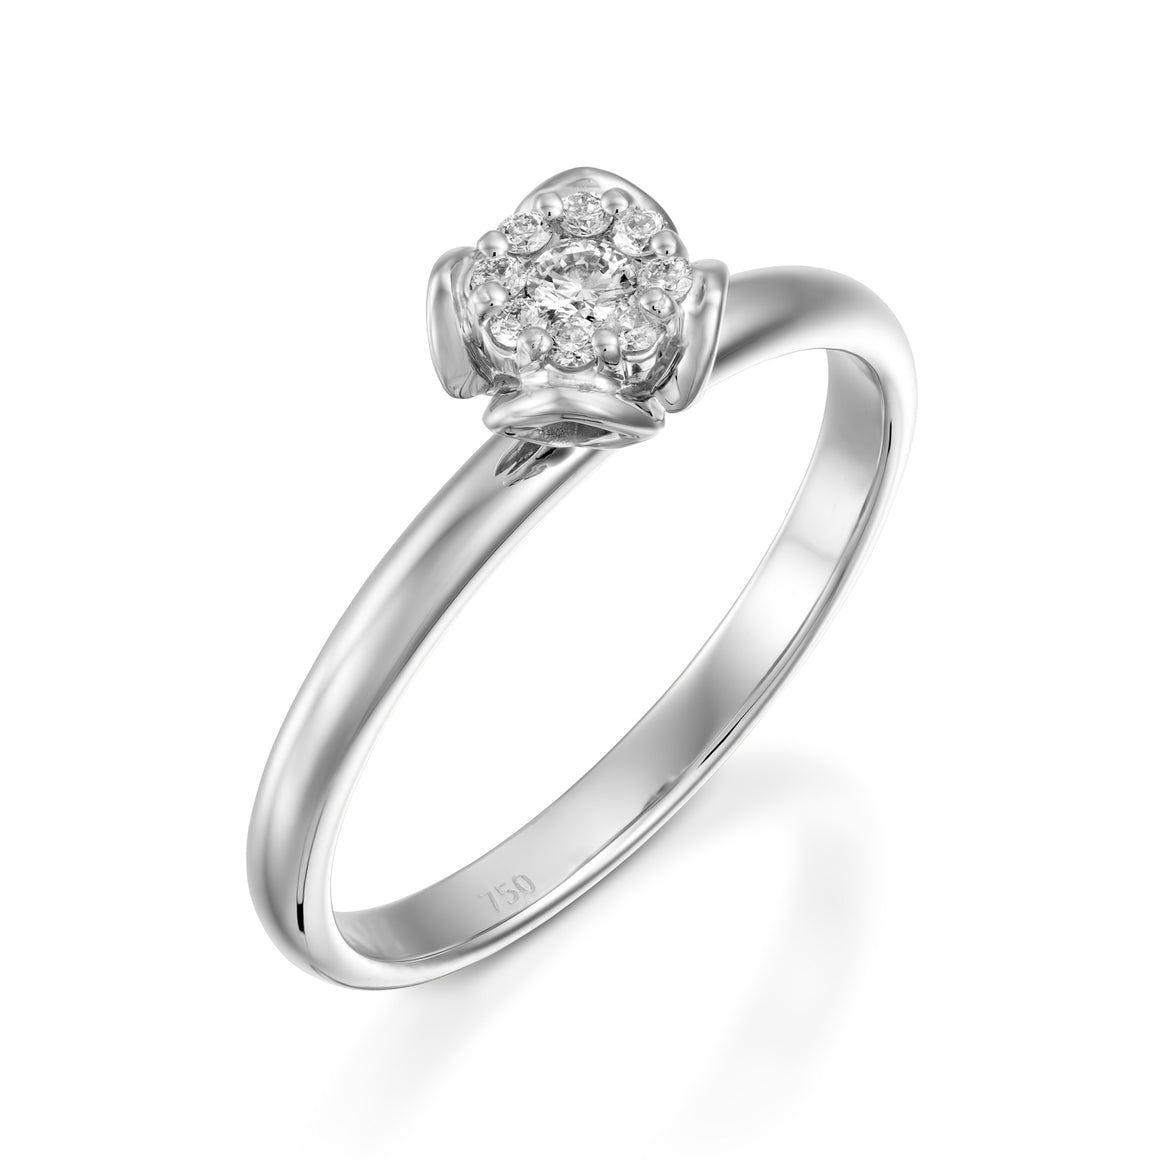 0.12 carat White gold flower diamond engagement ring for women - Petite Fleur